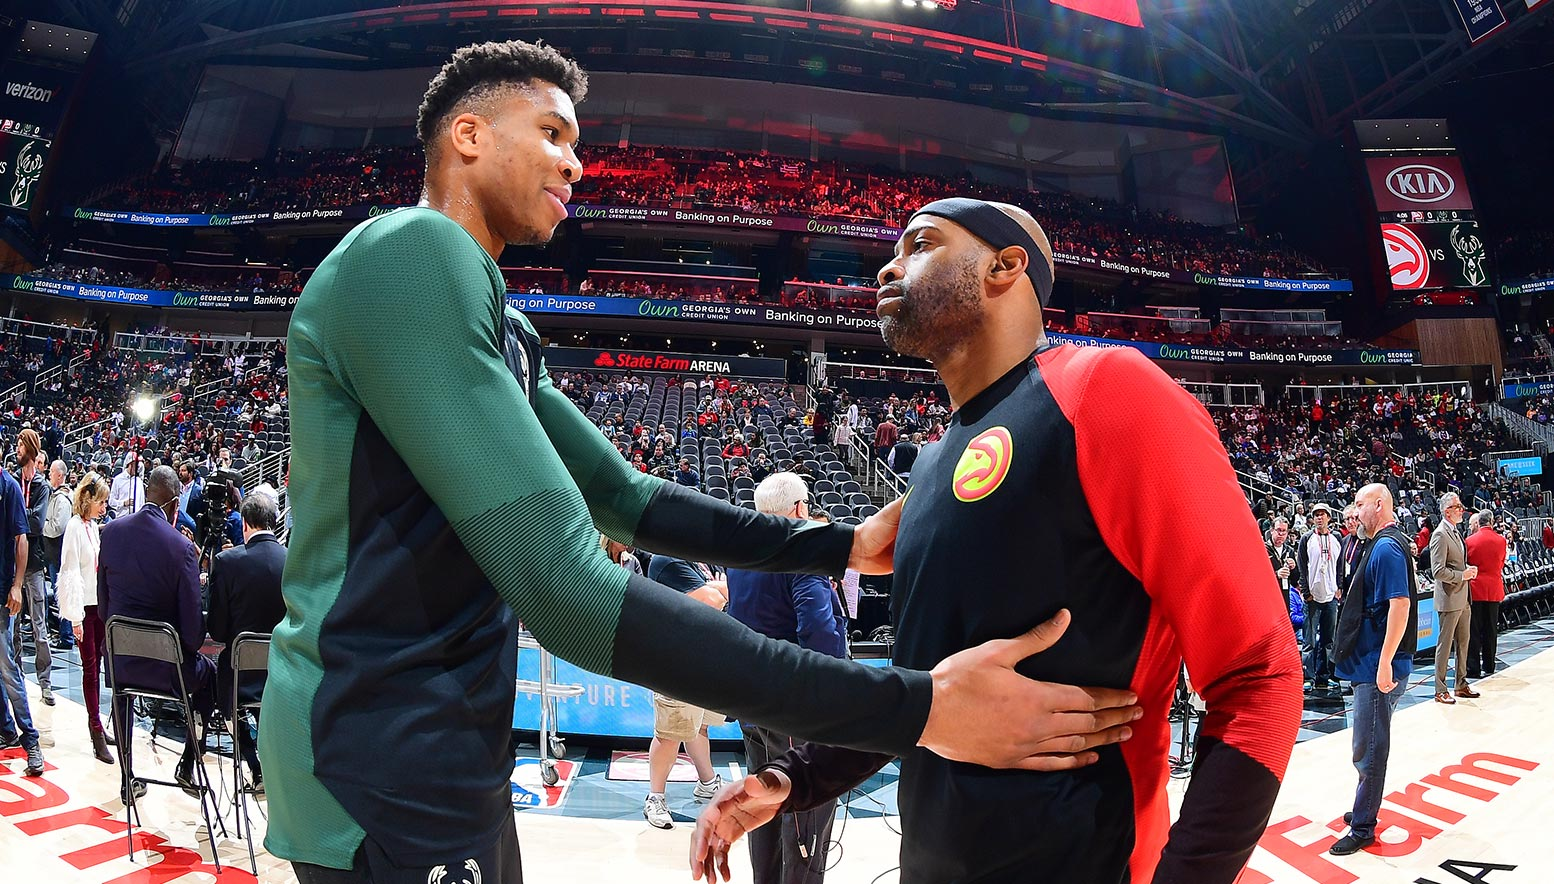 Vince Carter and Giannis Antetokounmpo